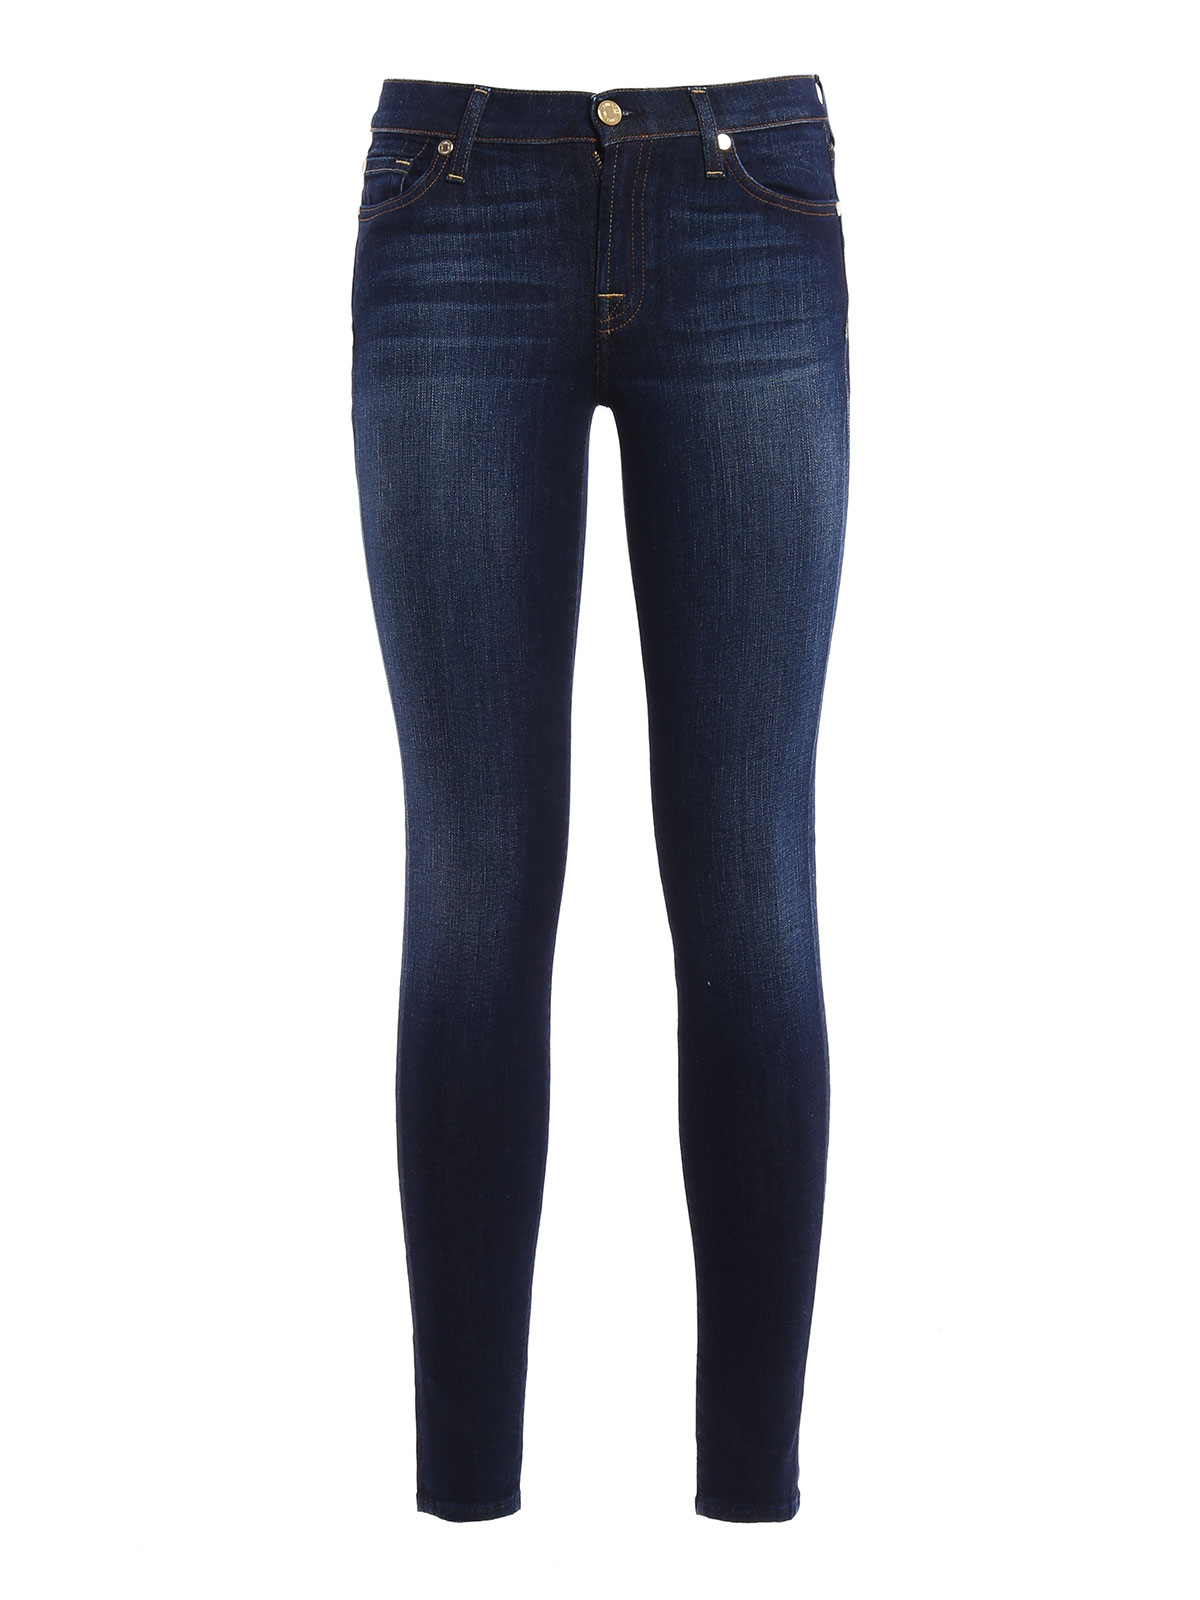 super skinny jeans by 7 for all mankind skinny jeans ikrix. Black Bedroom Furniture Sets. Home Design Ideas